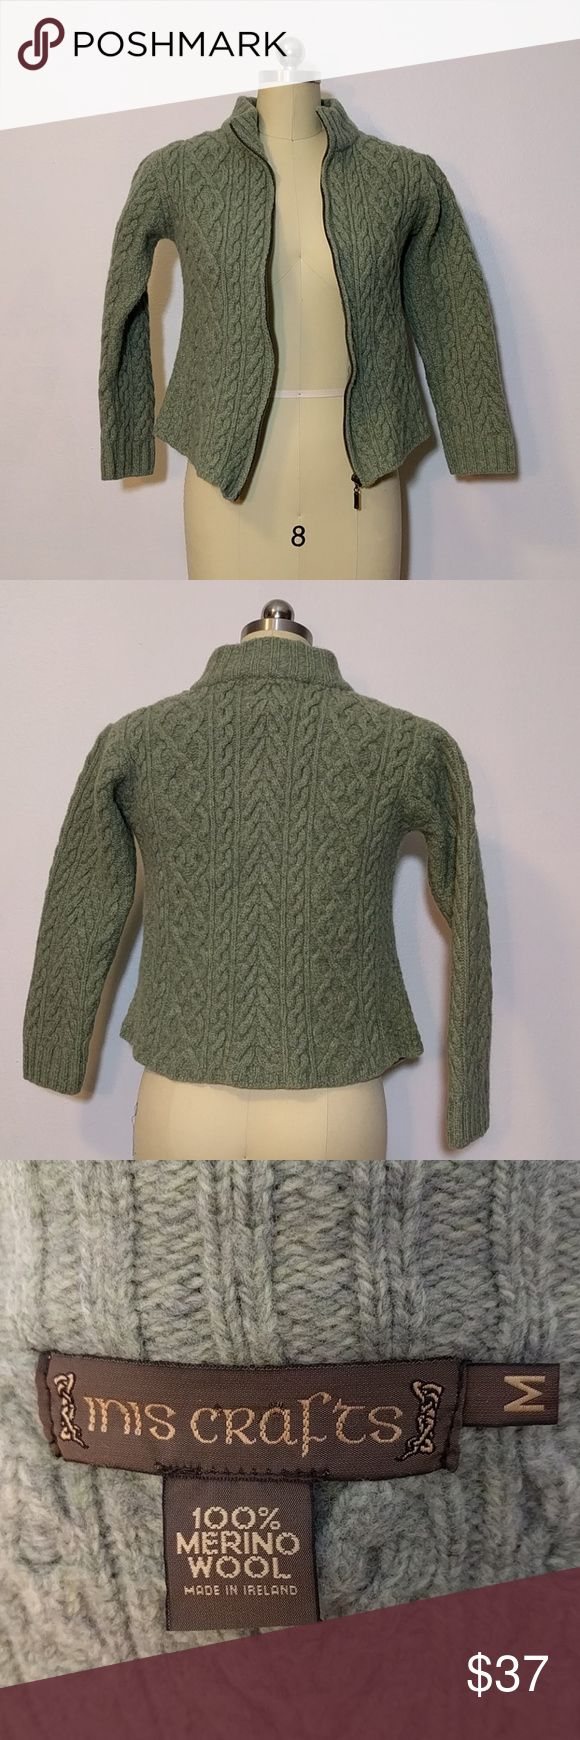 25 best ideas about irish sweaters on pinterest irish for Inis crafts ireland sweater